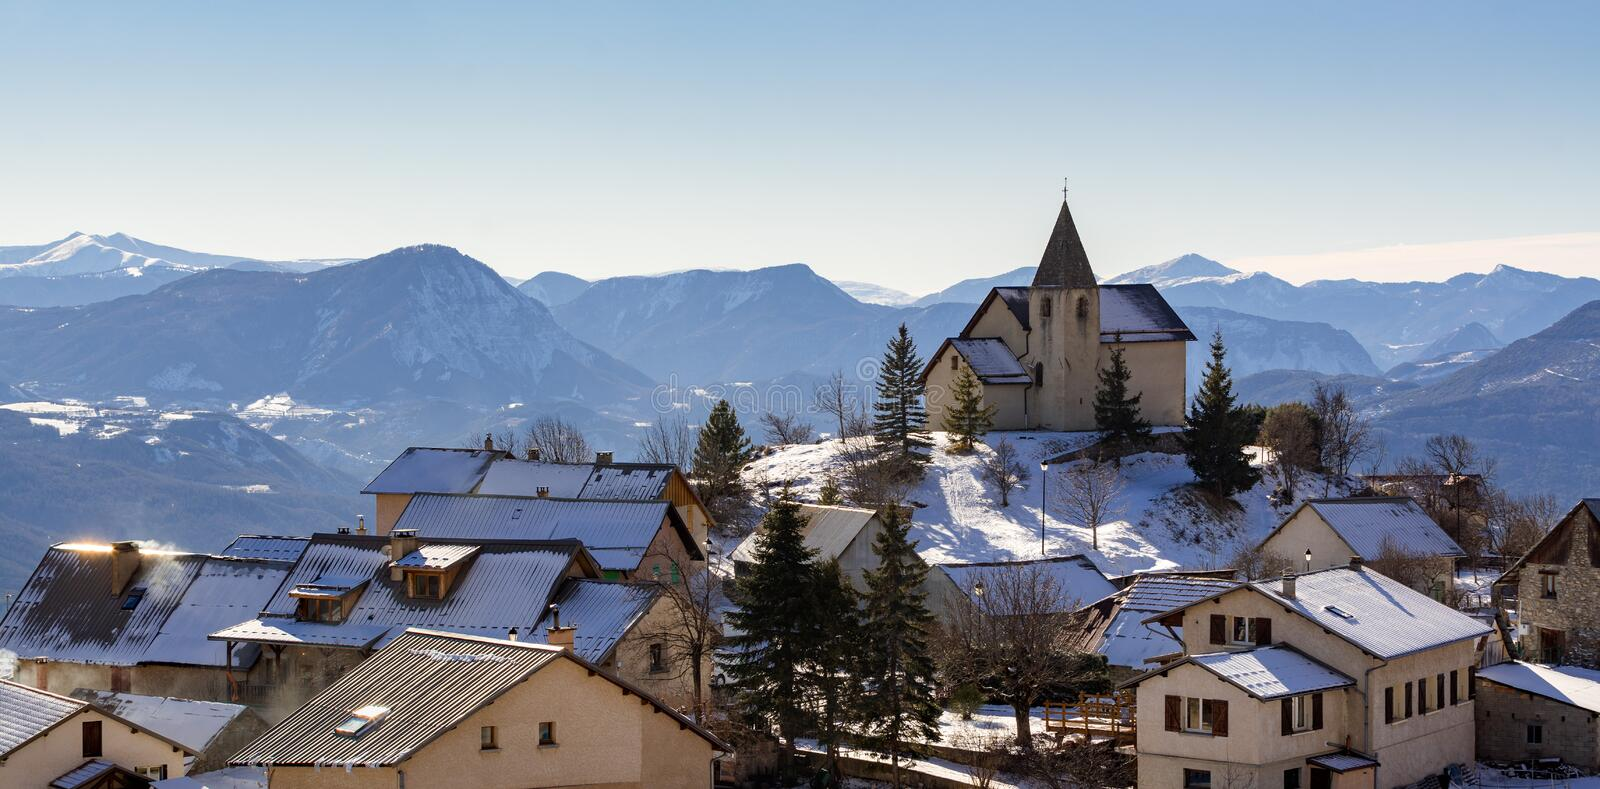 Village de saint-Apollinaire en hiver Hautes-Alpes, Alpes français, Frances photo stock